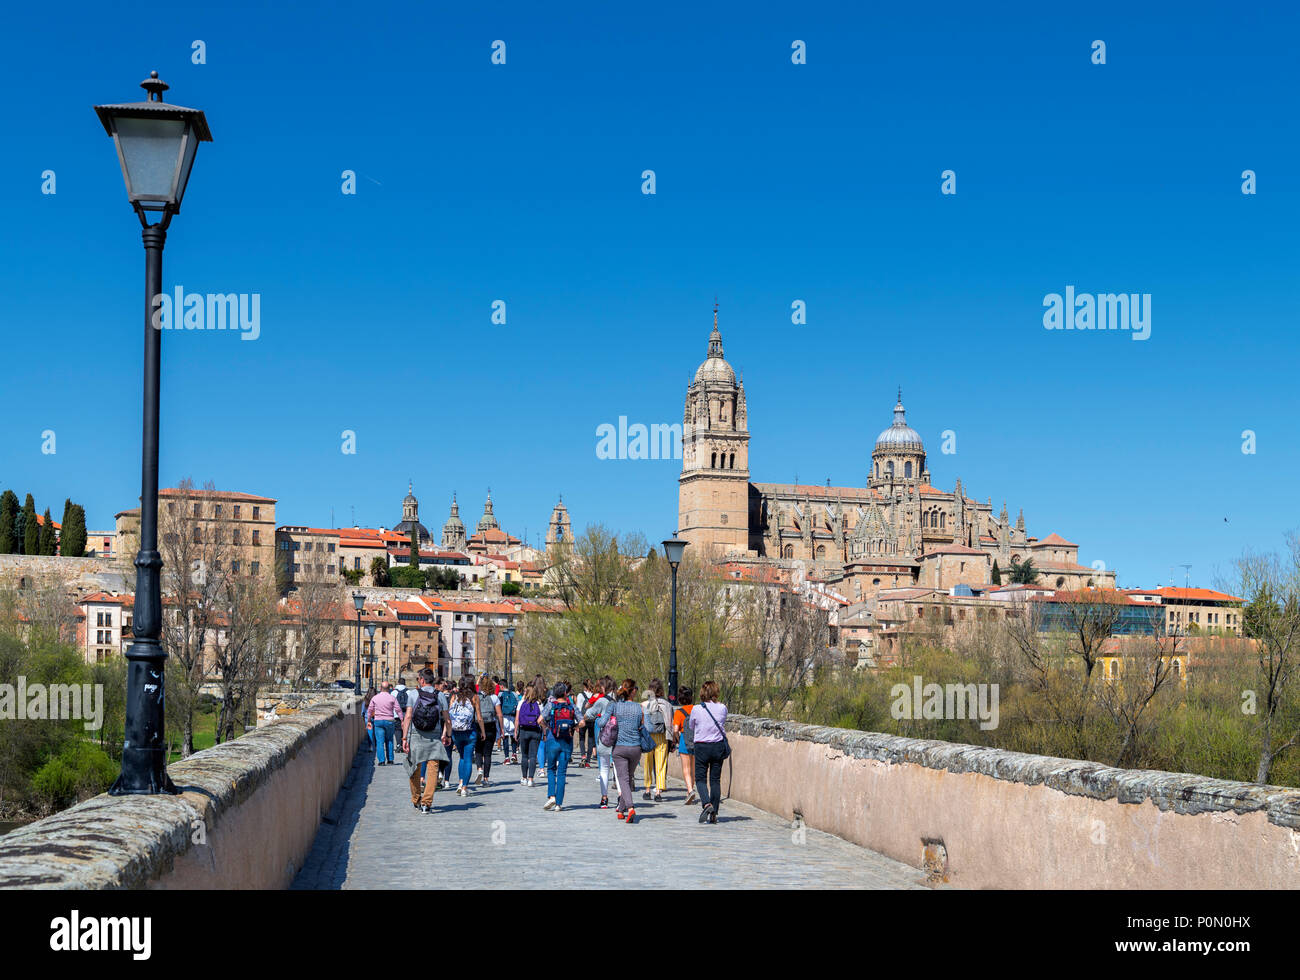 Salamanca, Spain. View towards the old town and cathedrals from the Puente Romano (Roman Bridge), Salamanca, Castilla y Leon, Spain - Stock Image